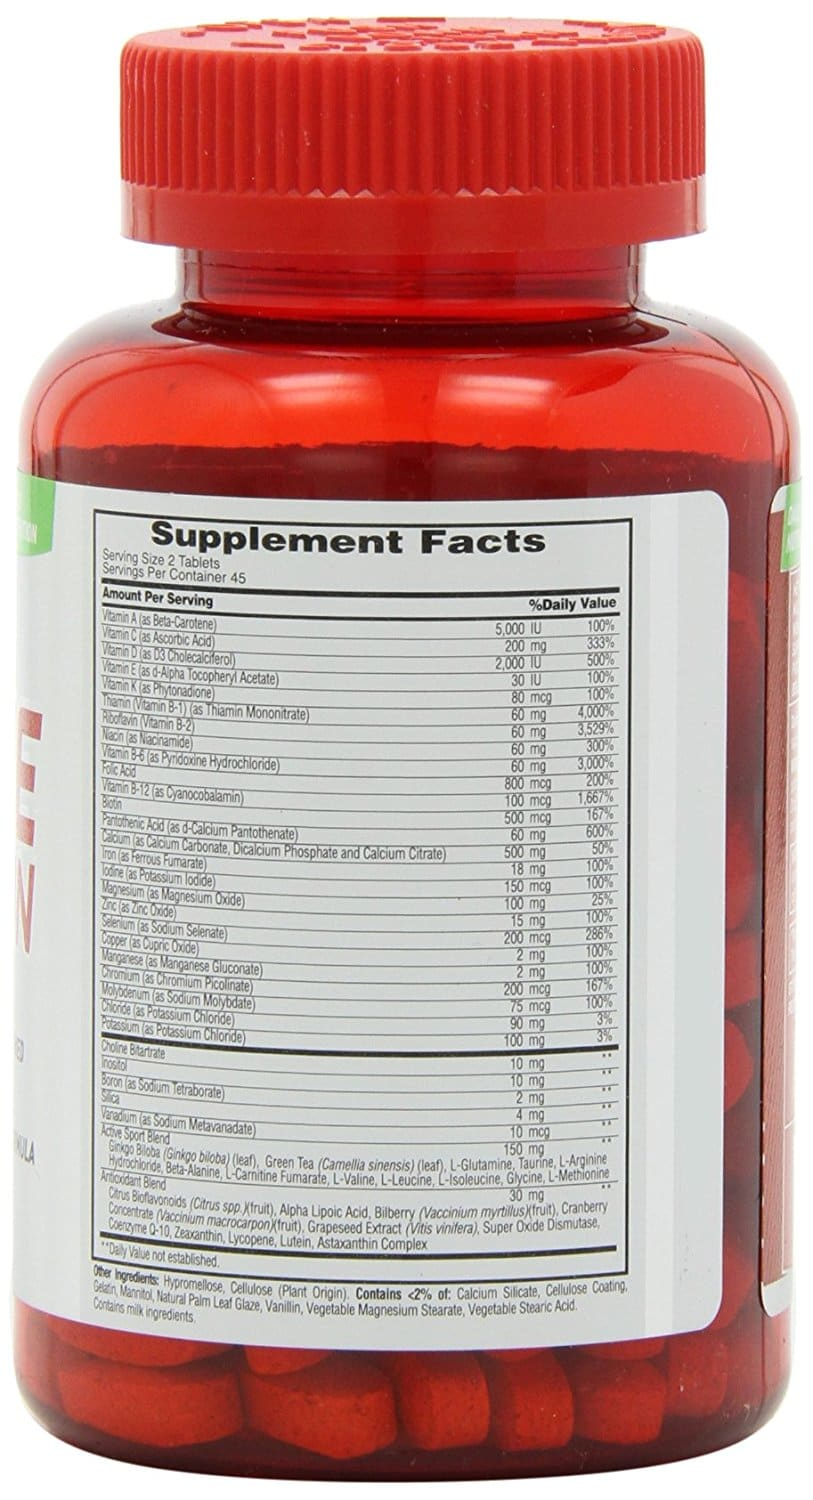 Met-Rx Active Woman supplement facts label